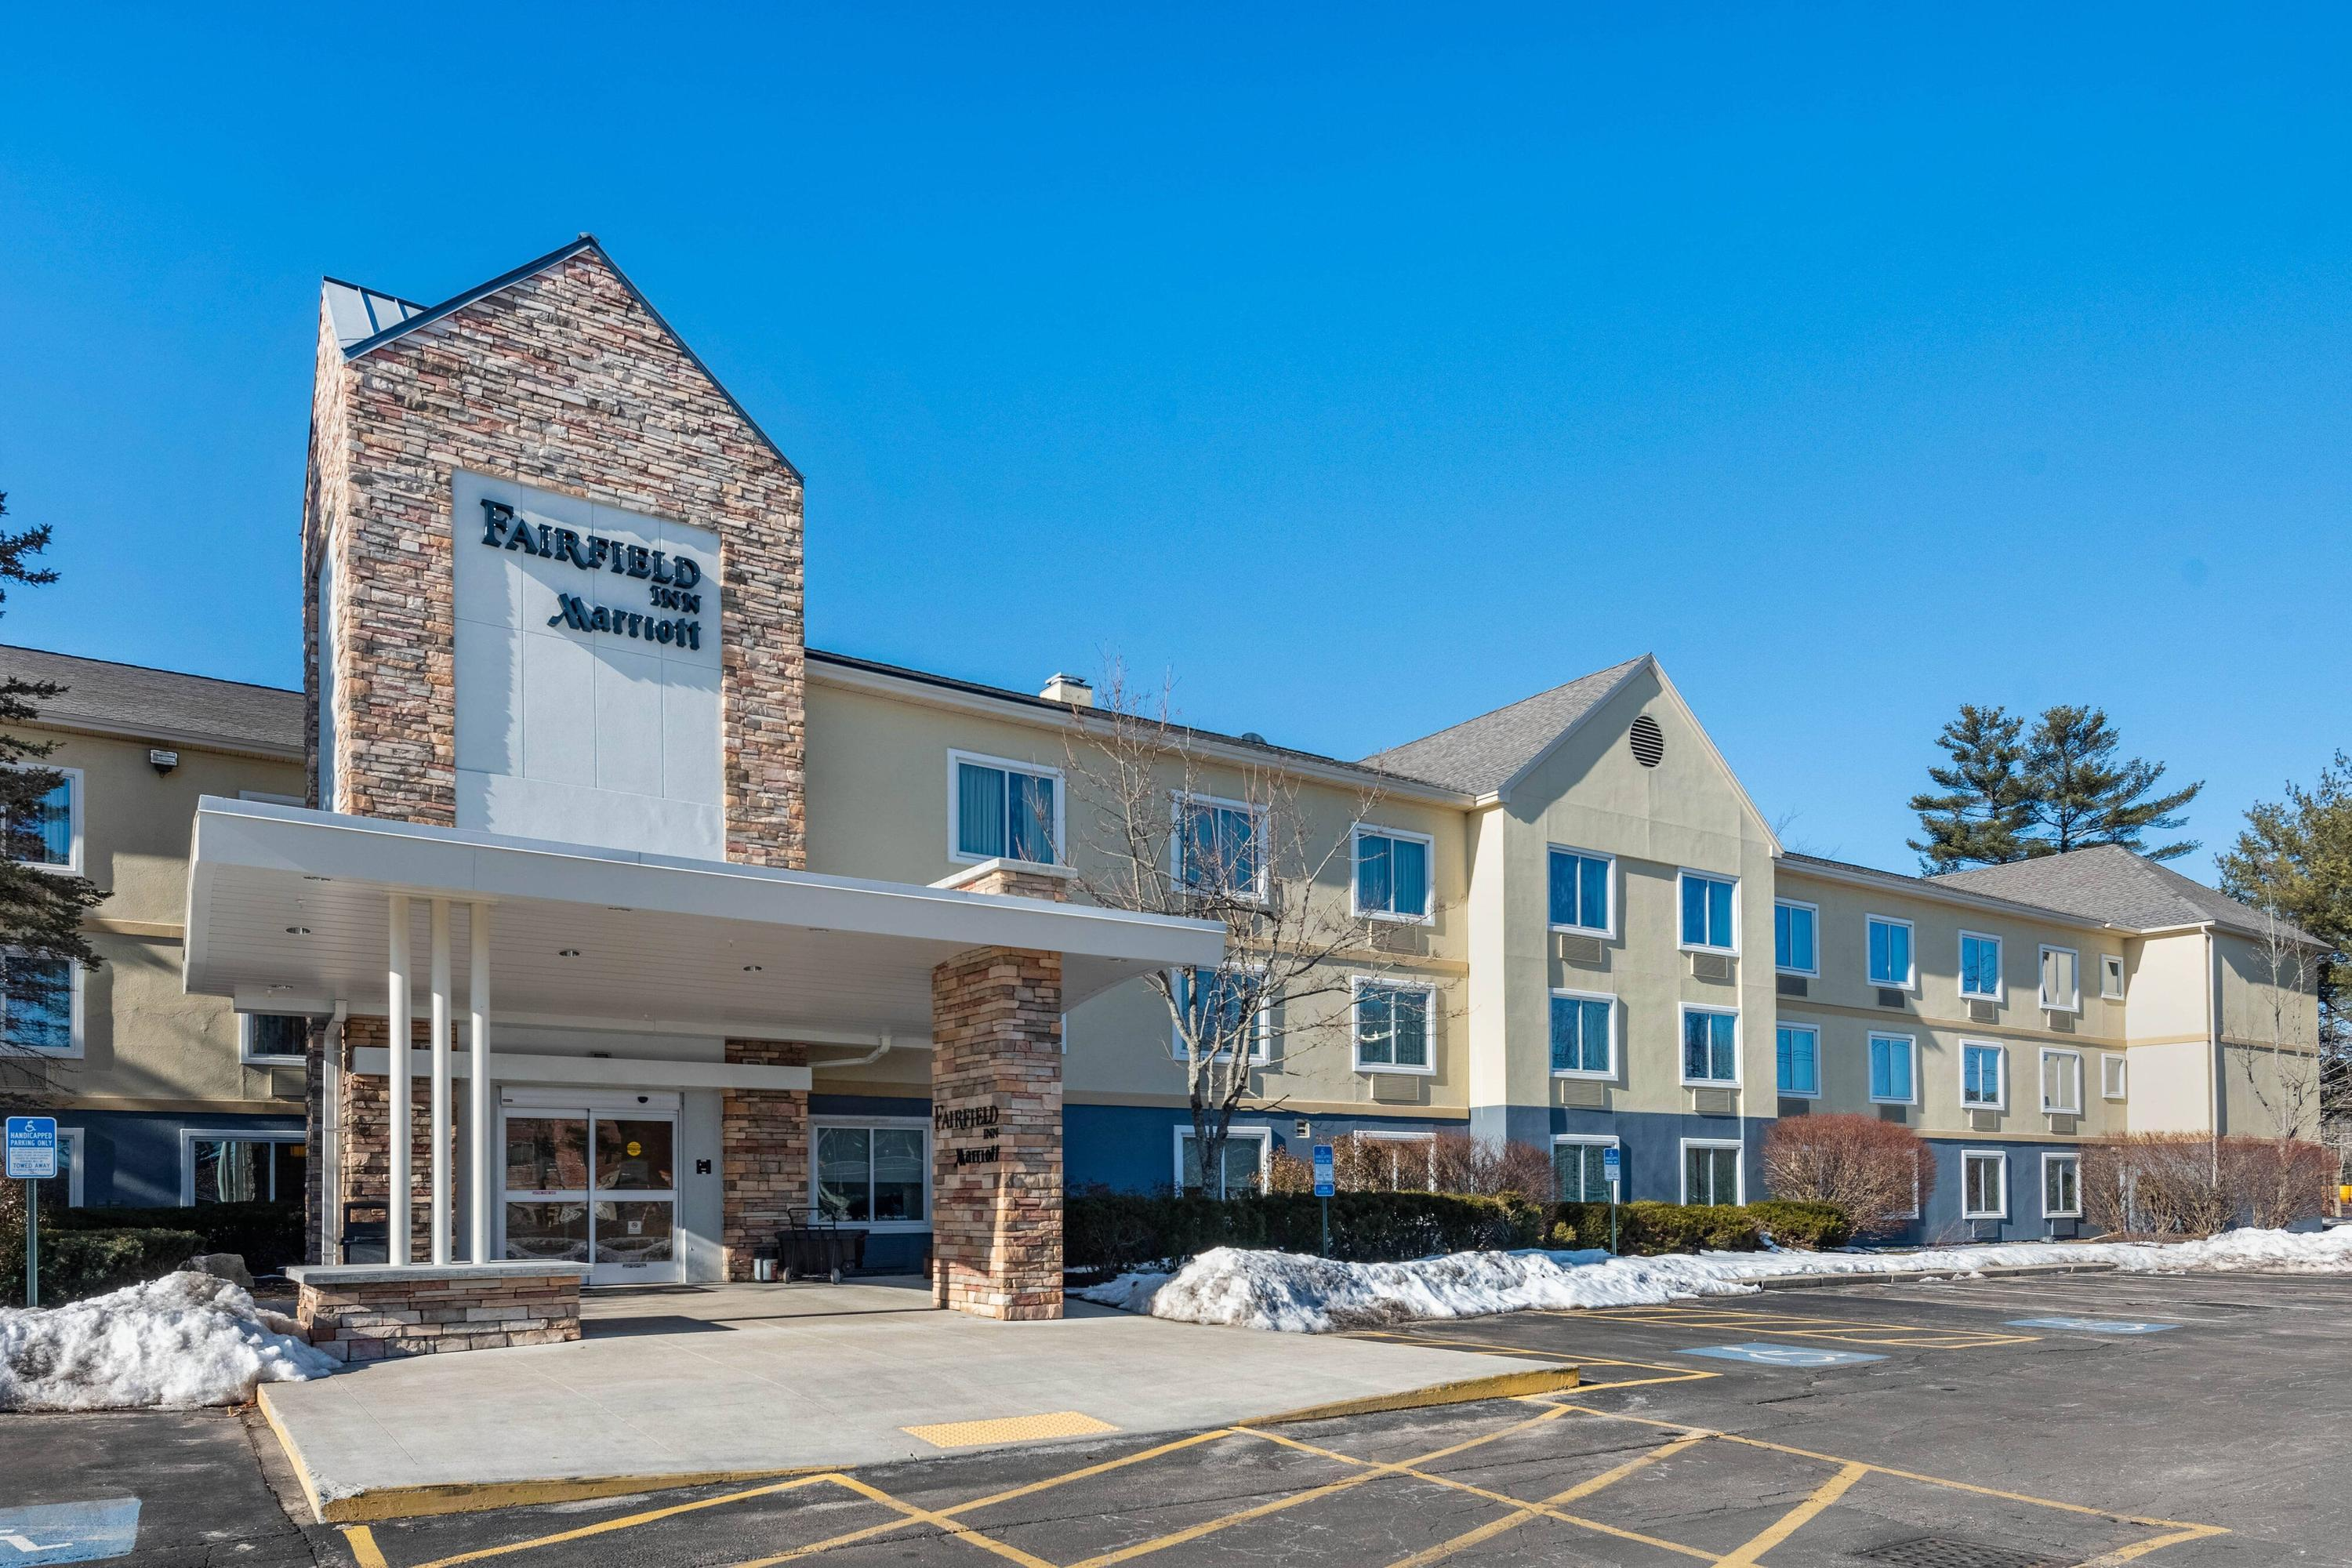 Fairfield Inn by Marriott Portland Scarborough